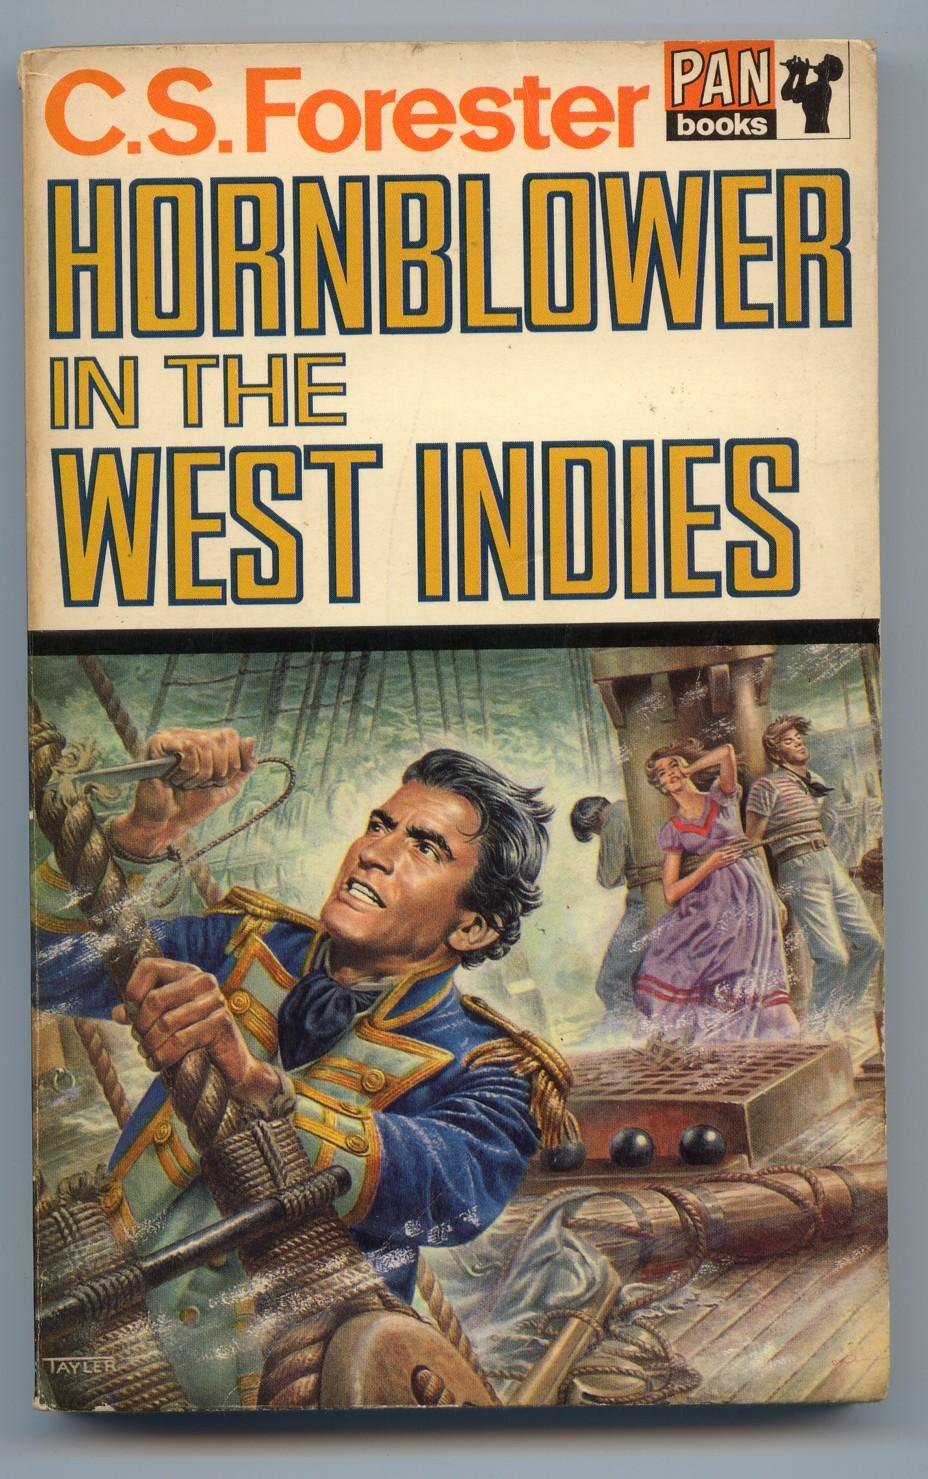 Hornblower in the West Indies, C. S. Forester